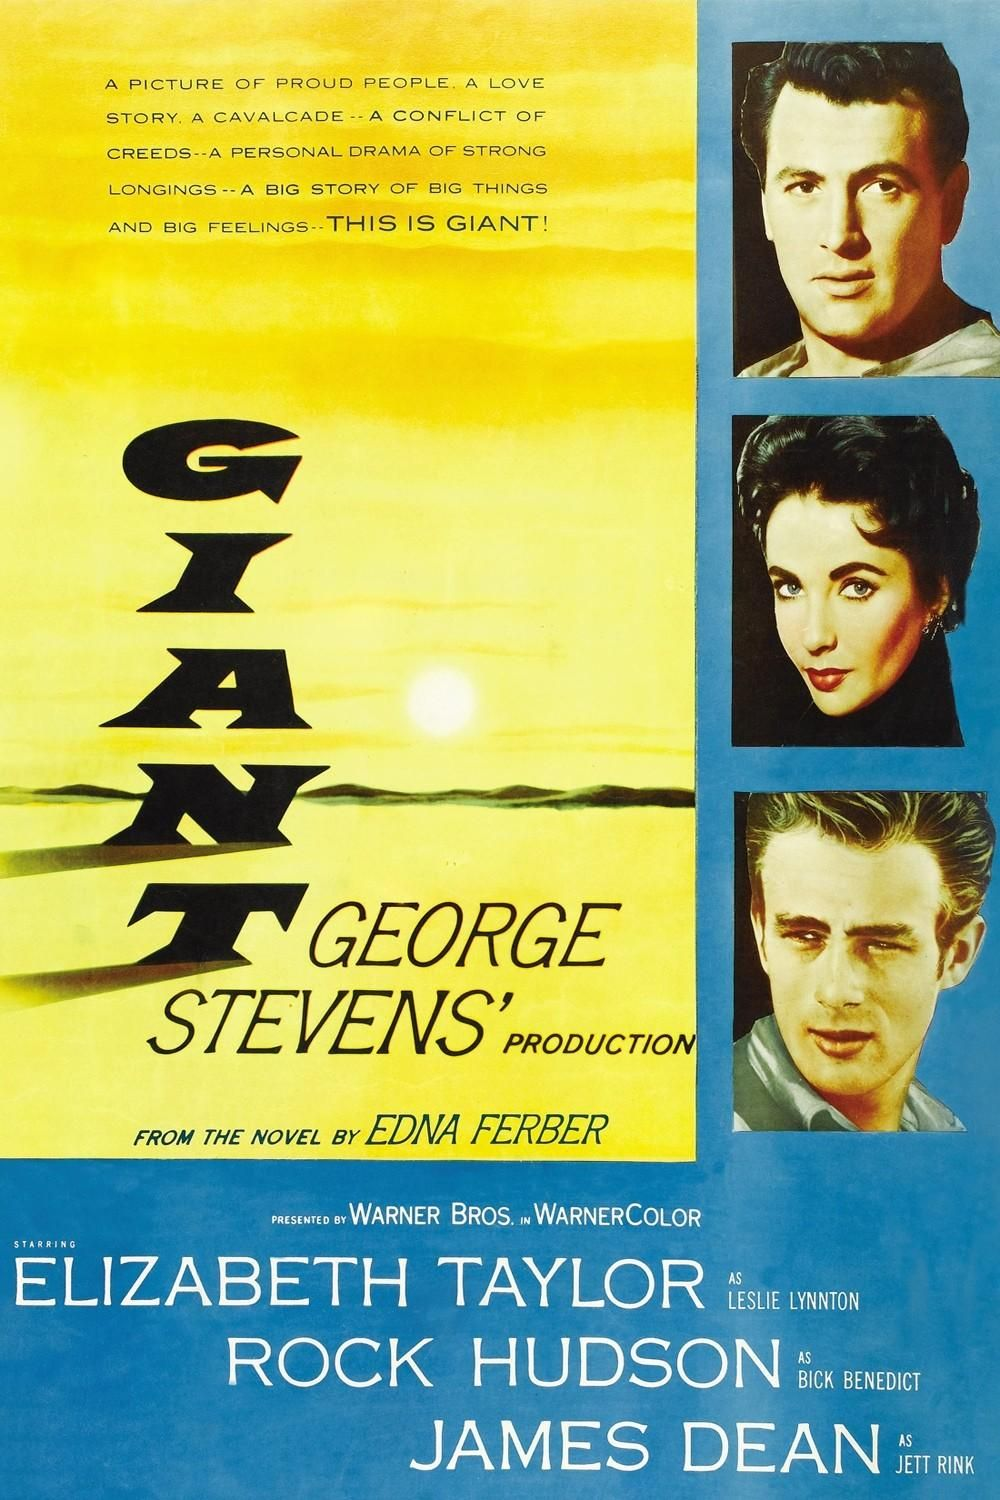 Giant (1956) - poster | Giant (1956) | Classic movie posters, Old movie posters, Movie posters